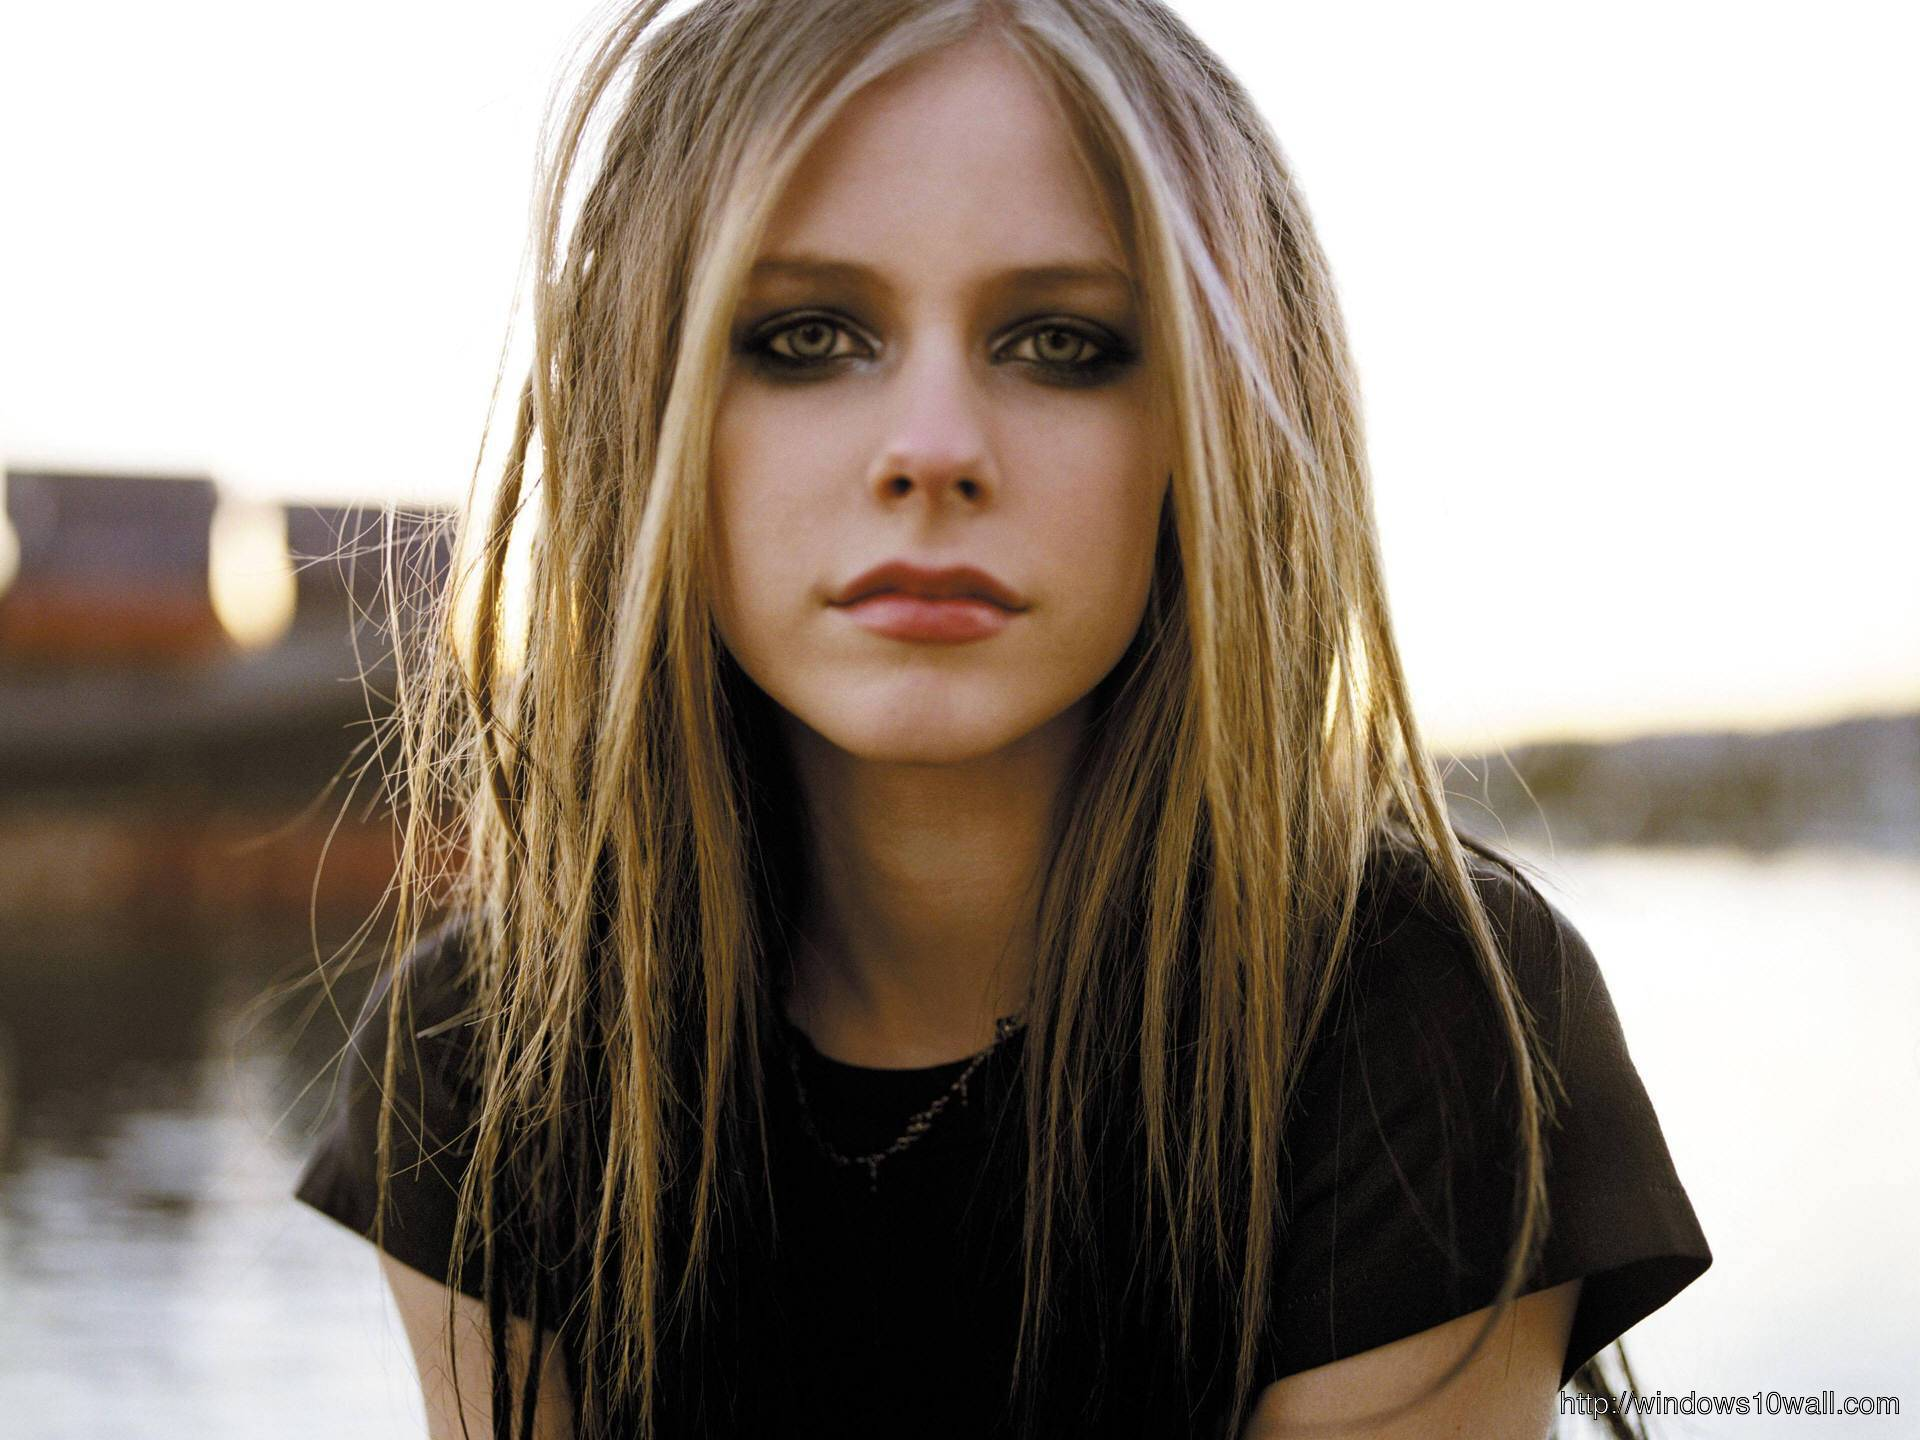 Avril Lavigne celebrity Wallpaper hd